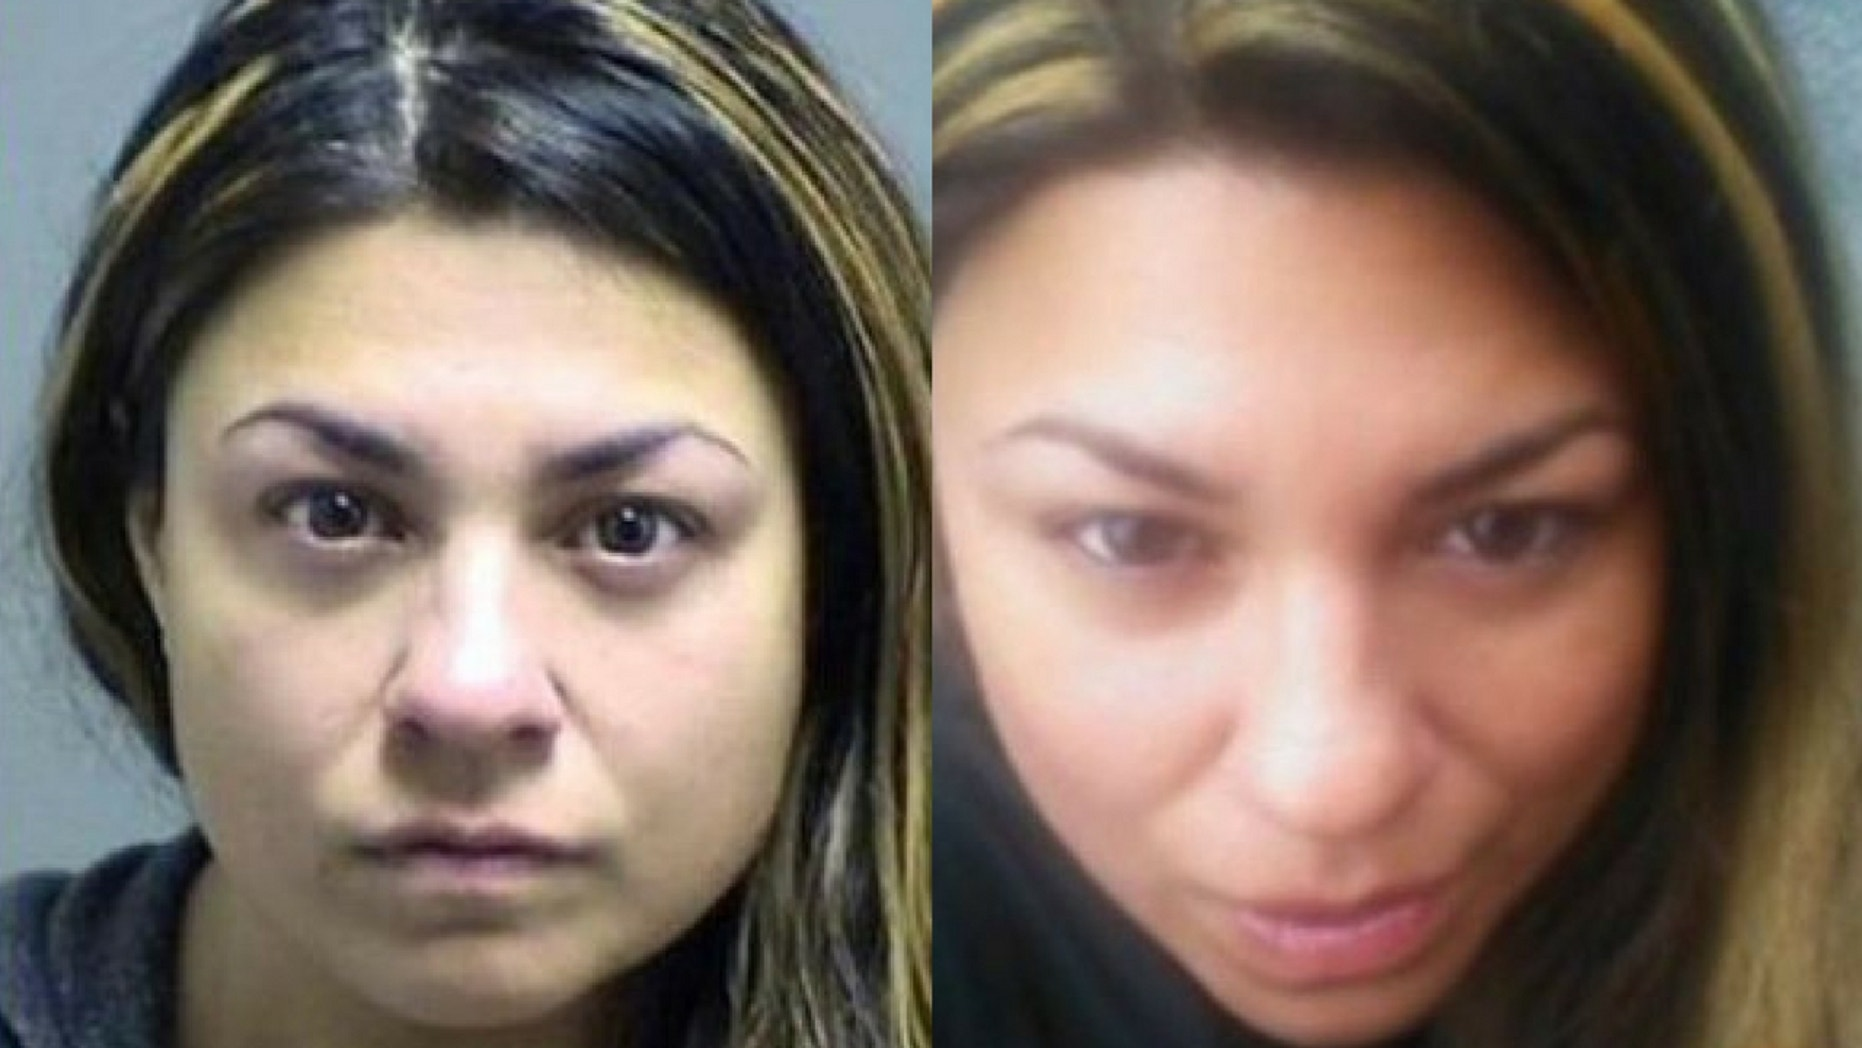 Amanda Nasser, 32, was sentenced to prison after she admitted to having sex with a student.